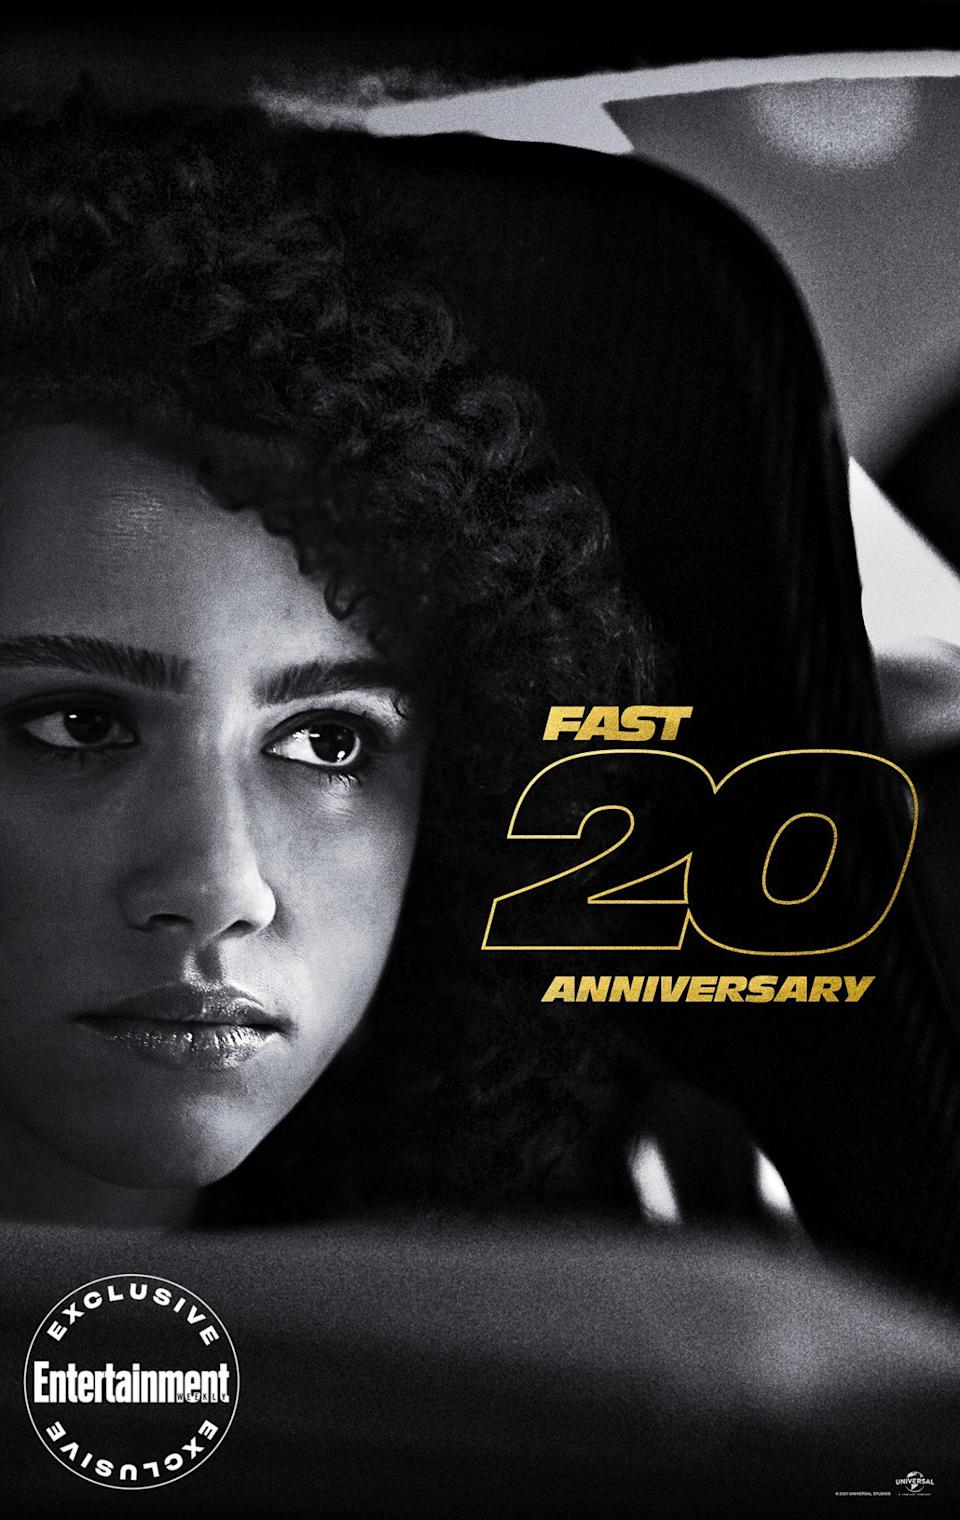 """<p><a href=""""https://ew.com/tag/nathalie-emmanuel/"""" rel=""""nofollow noopener"""" target=""""_blank"""" data-ylk=""""slk:Nathalie Emmanuel"""" class=""""link rapid-noclick-resp"""">Nathalie Emmanuel</a>'s world-class hacker Ramsey has gone from being saved by the family in <em>Furious 7</em> to becoming an integral part of it. """"I often feel so attracted to women who are so undeniably talented, and Ramsey is absolutely that,"""" said Emmanuel on <a href=""""https://ew.com/ew-binge-podcast/fast-saga-nathalie-emmanuel-fate-of-the-furious/"""" rel=""""nofollow noopener"""" target=""""_blank"""" data-ylk=""""slk:EW's BINGE: The Fast Saga"""" class=""""link rapid-noclick-resp""""><em>EW's BINGE: The Fast Saga</em></a>. """"On a personal level, because of the impact that <em>Fast & Furious</em> has had for me as a woman of mixed Black heritage, and seeing the diversity of those movies and how they grow, being a part of that huge impact that those movies have across the entire world was just so exciting - the idea that someone might one day see me and feel represented the way that I did when I was a kid.""""</p>"""